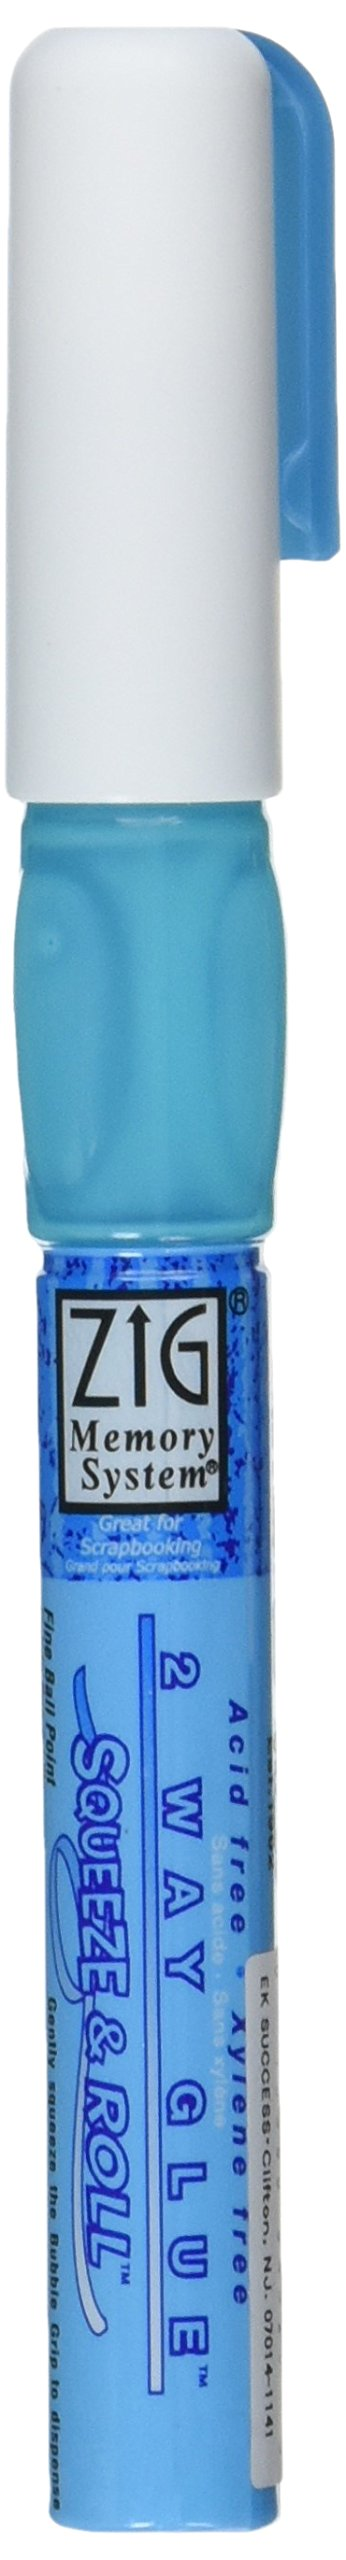 EK Tools Zig Memory System 2-Way Squeeze and Roll Glue Pen,.